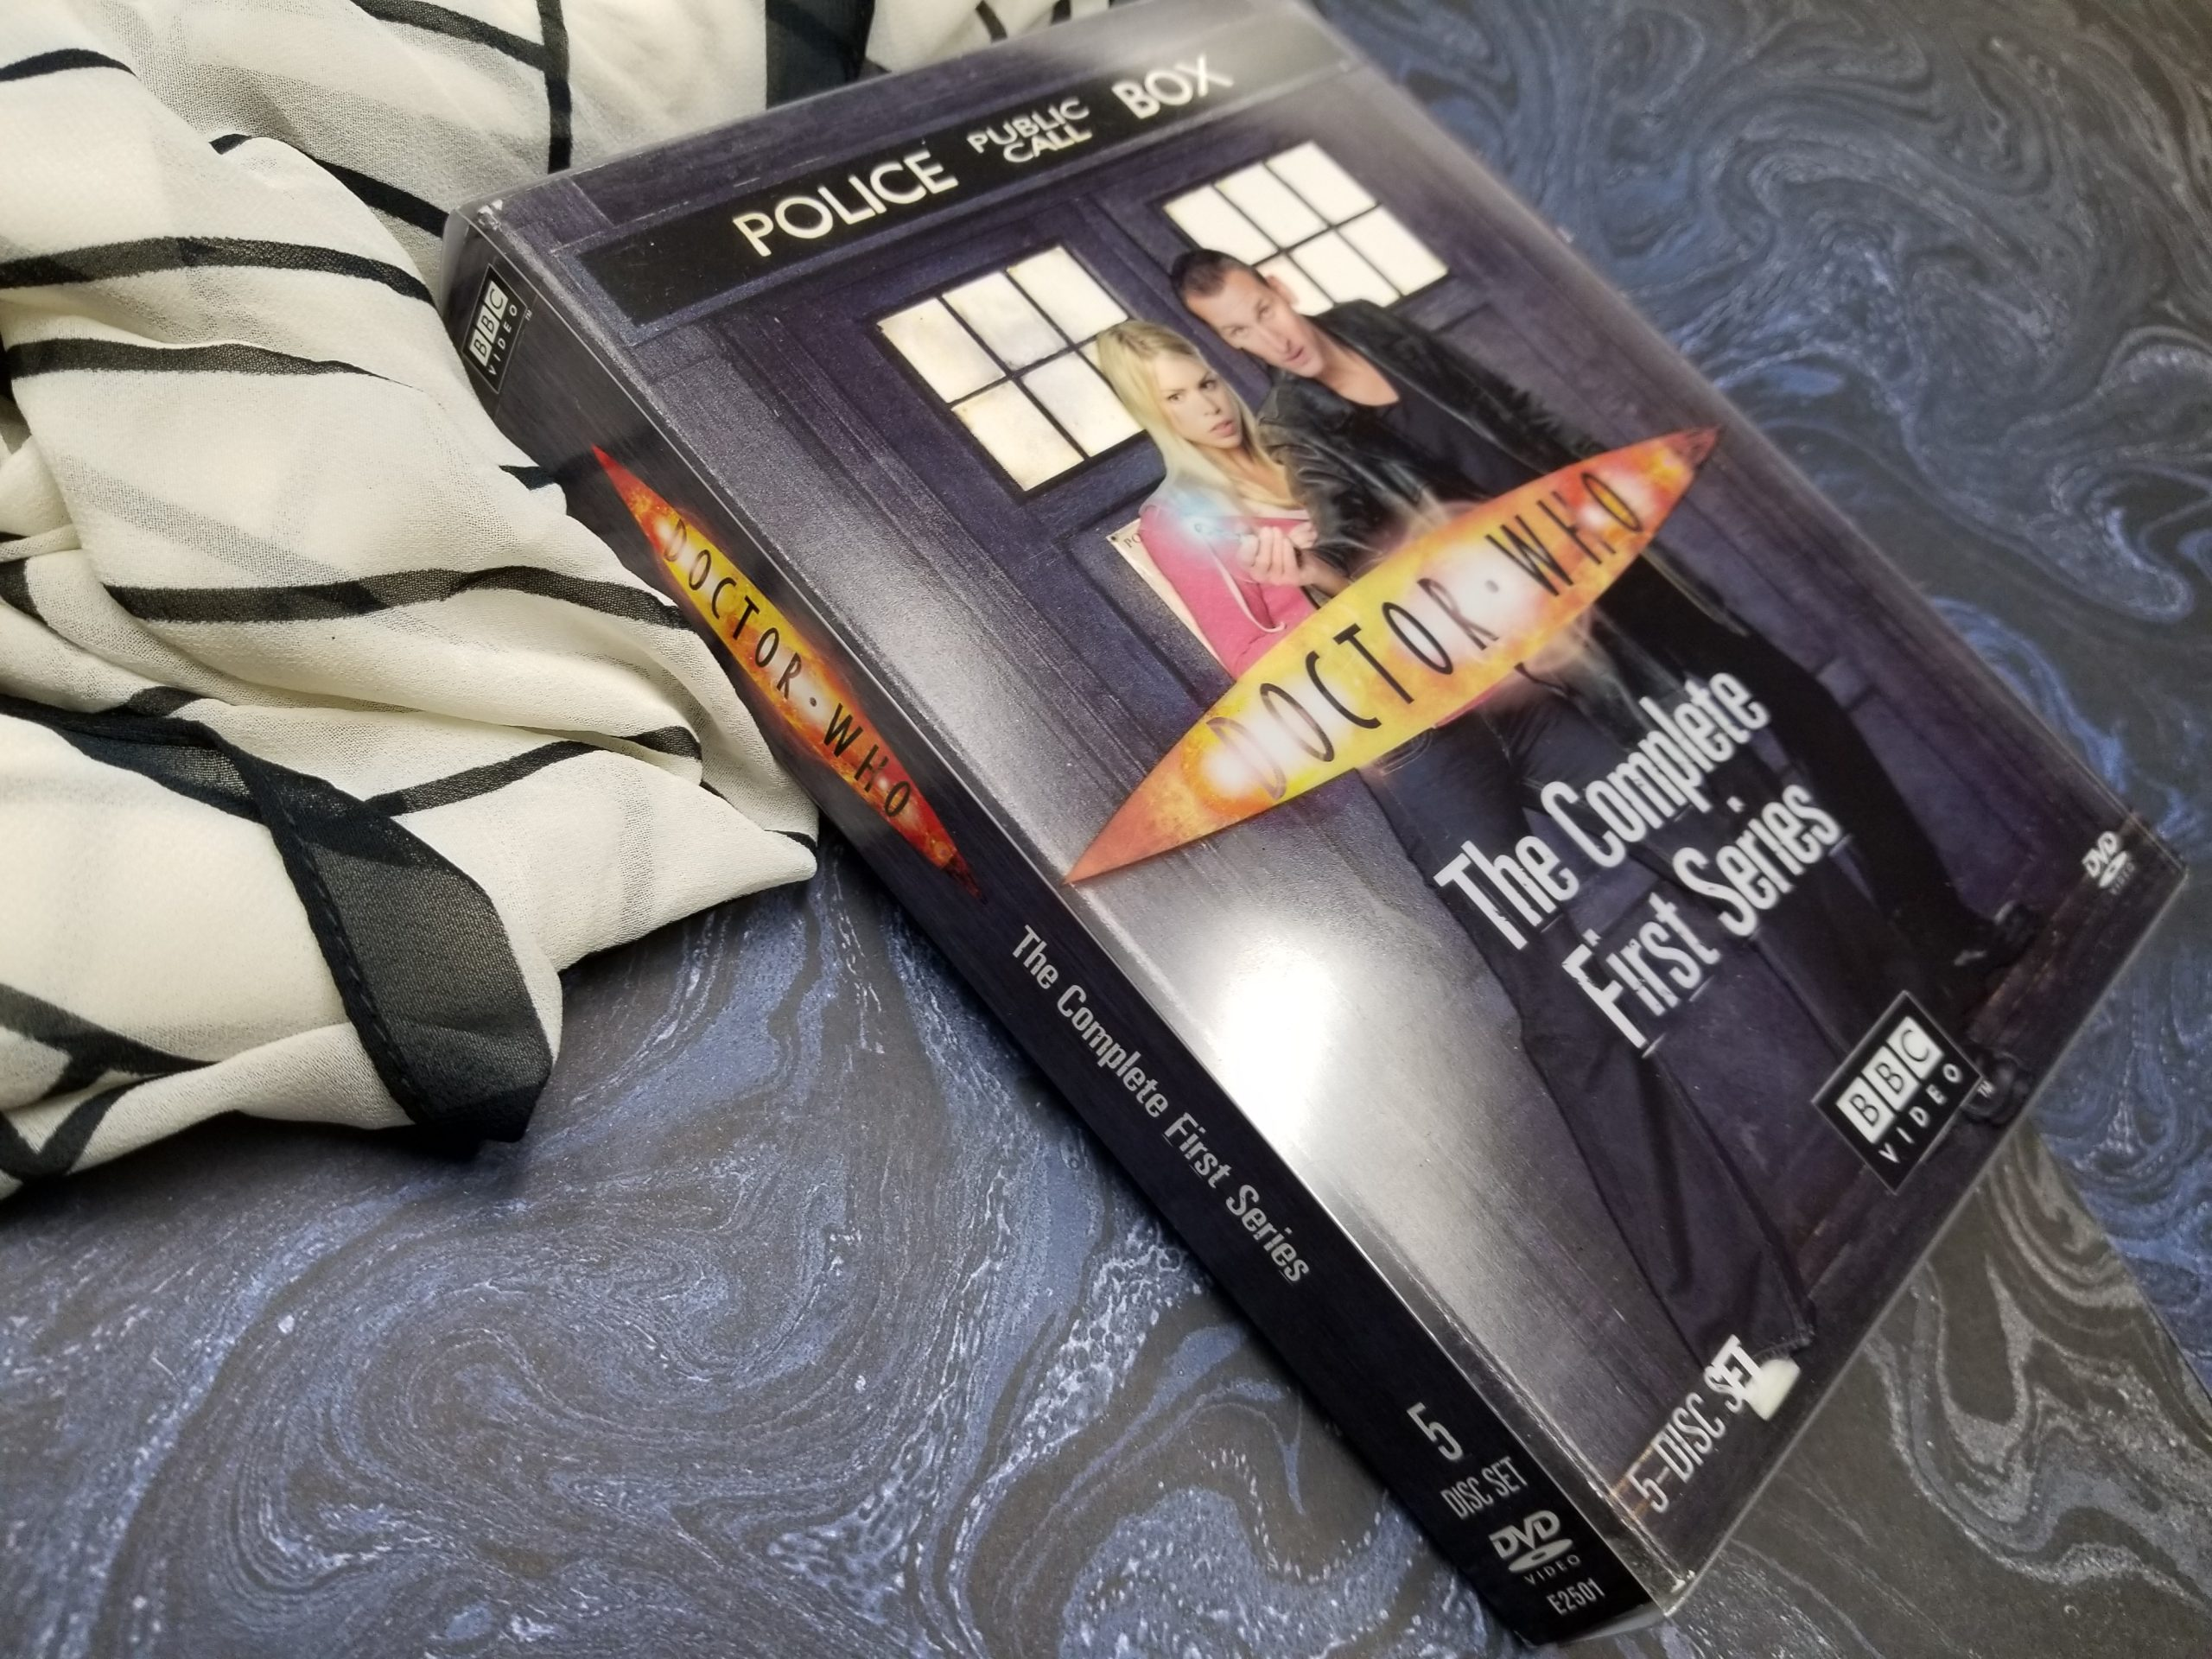 Doctor Who - The Complete First Series on DVD